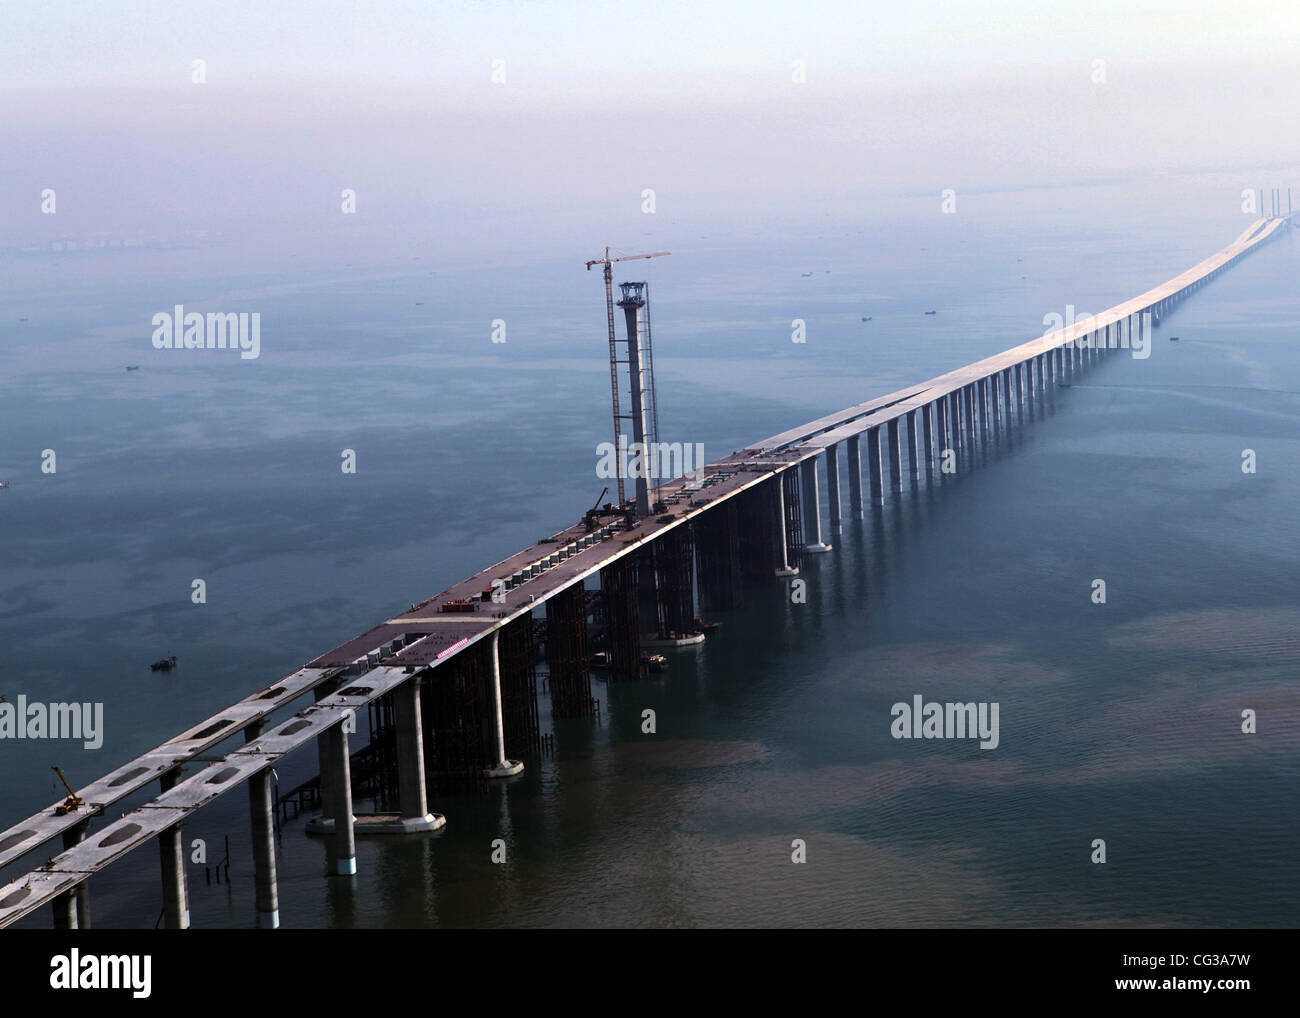 longest sea bridge the qingdao haiwan bridge was completed